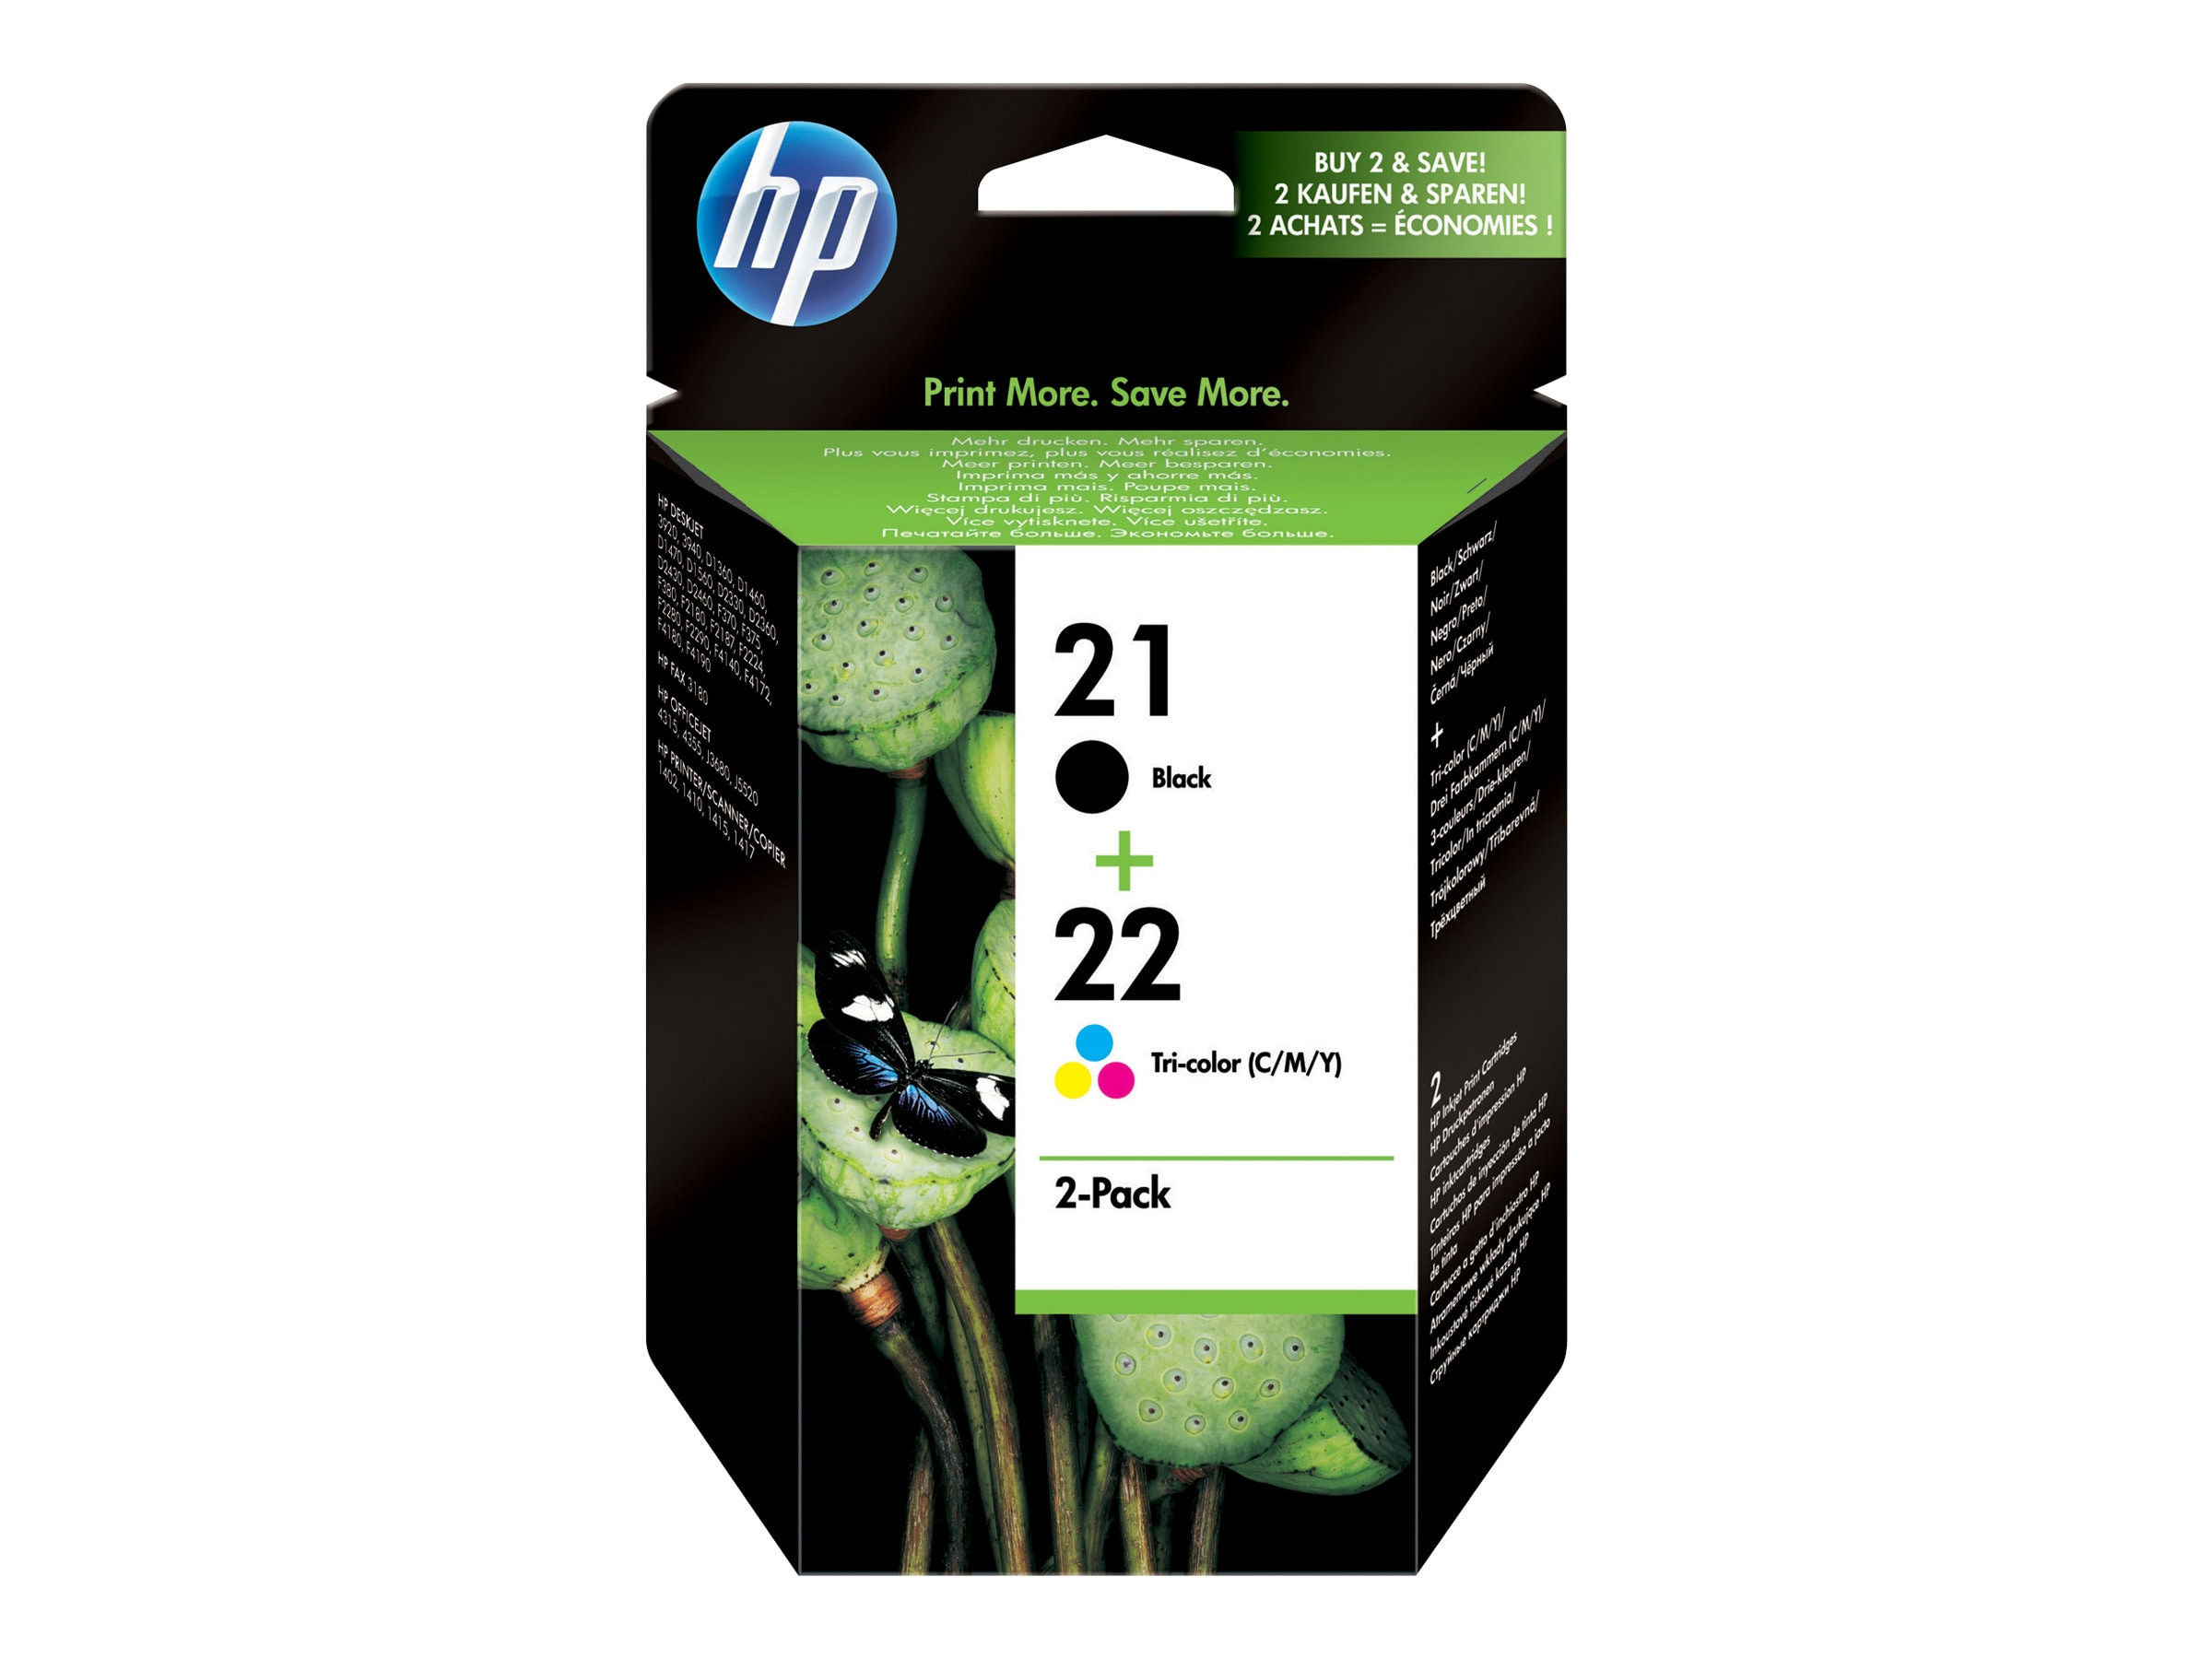 HP 21 (C9509FN) Black 22 Tri-color 2-pack Original Ink Cartridges